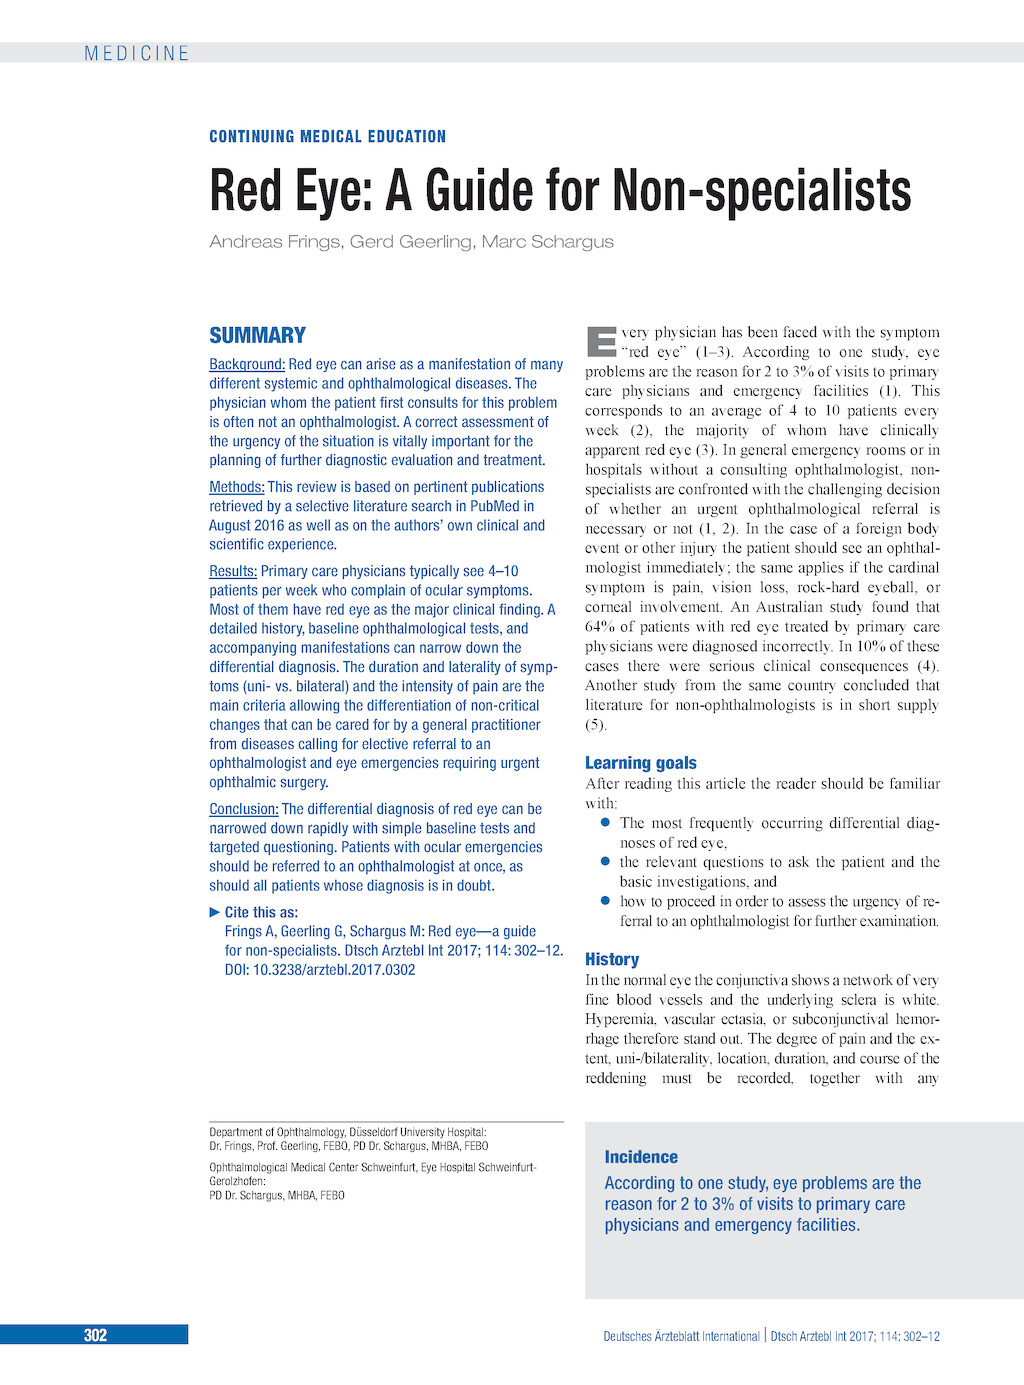 Red Eye: A Guide for Non-specialists (references)